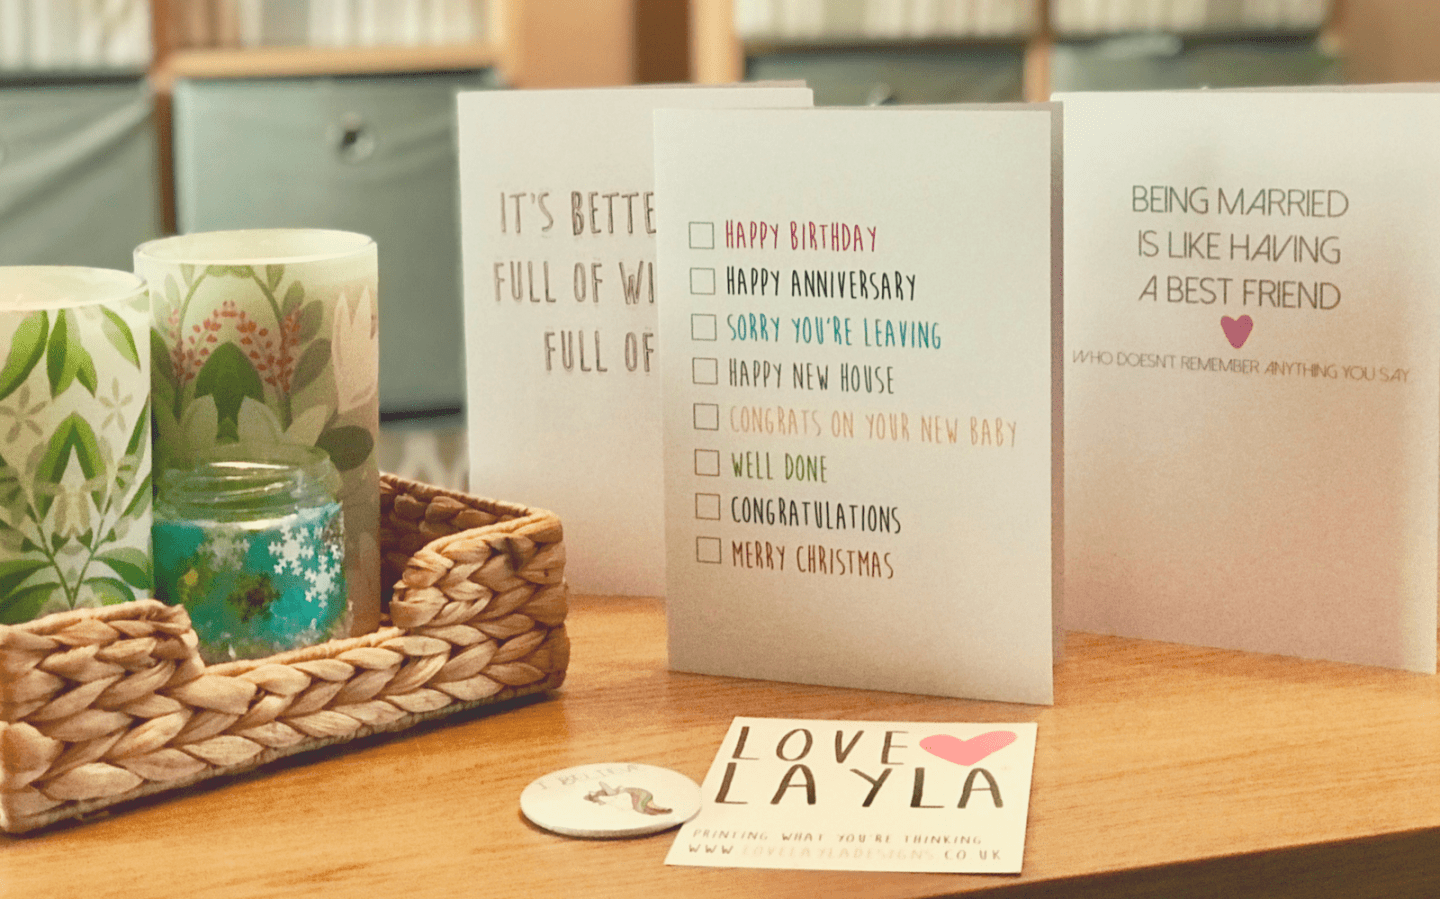 Fun And Unique Greetings Cards (Featuring Love Layla Designs)